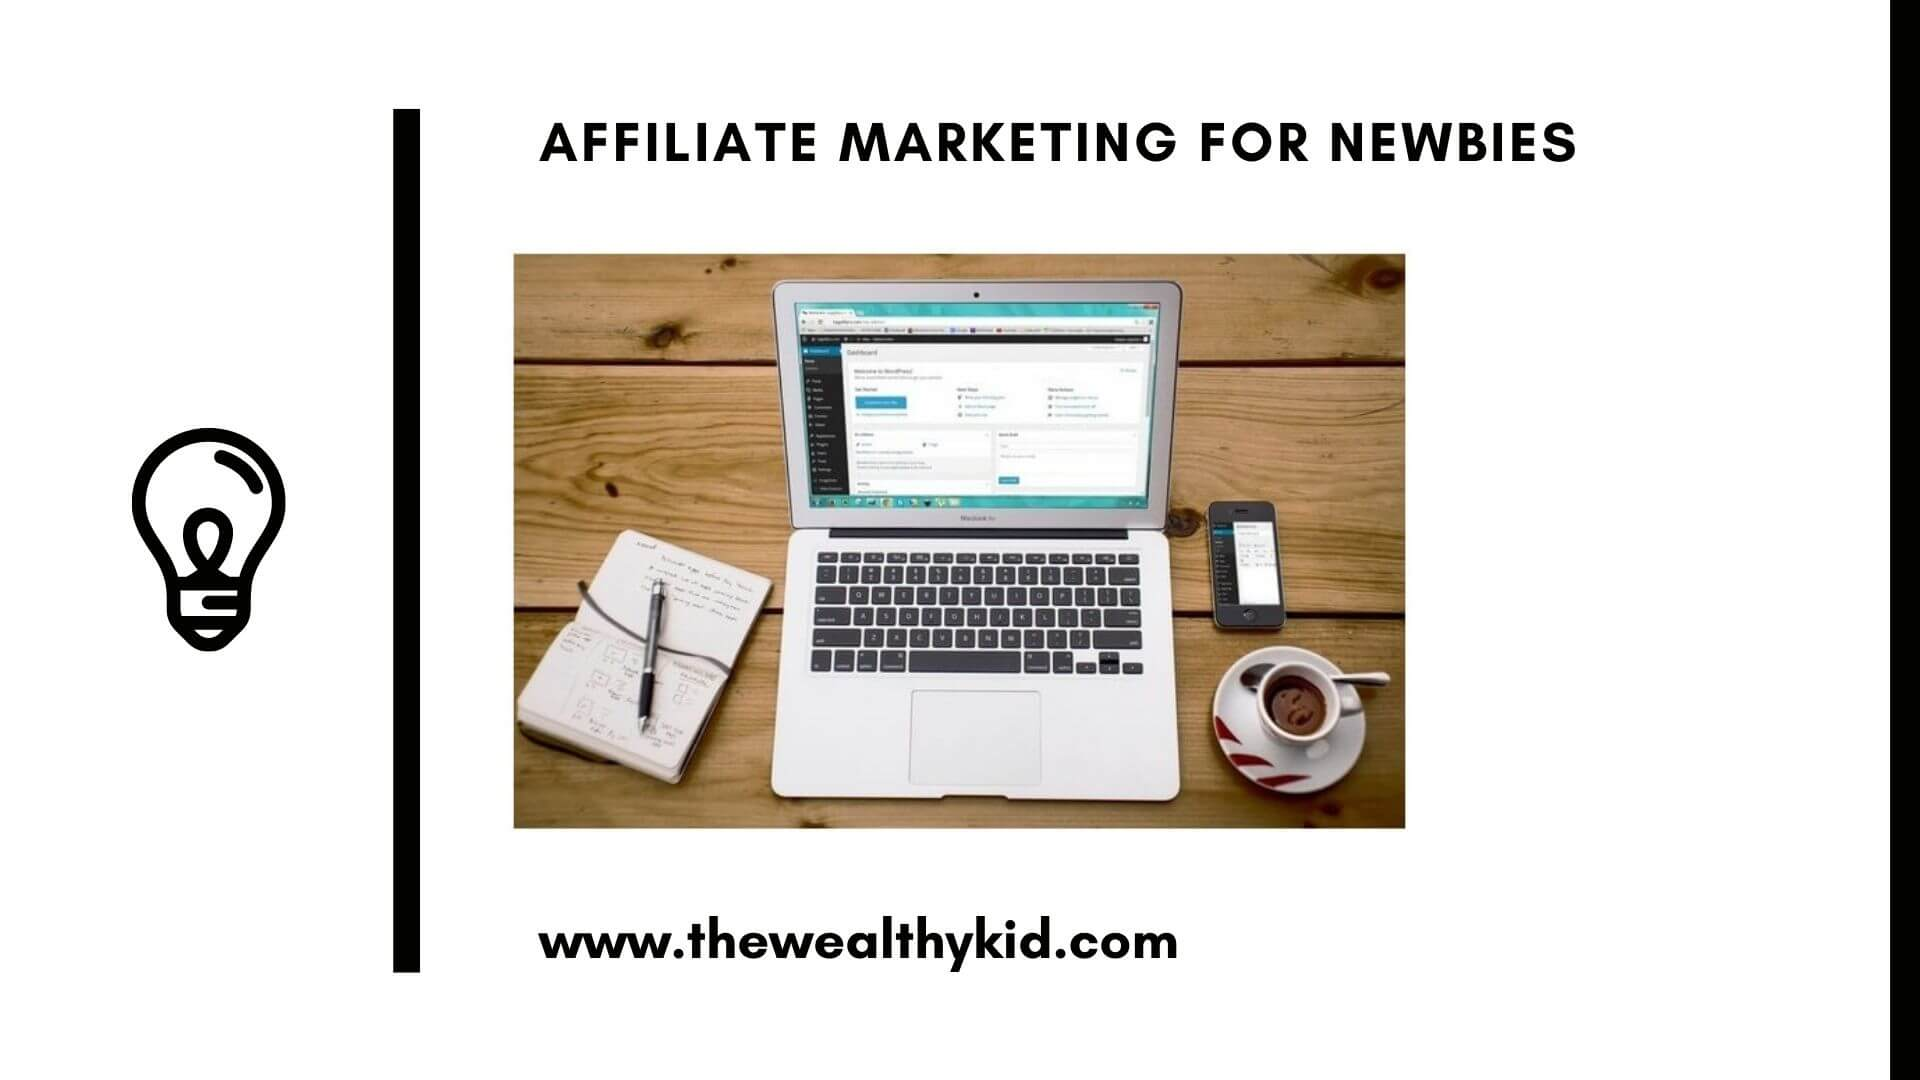 Affiliate Marketing For Newbies. Learn the basics here